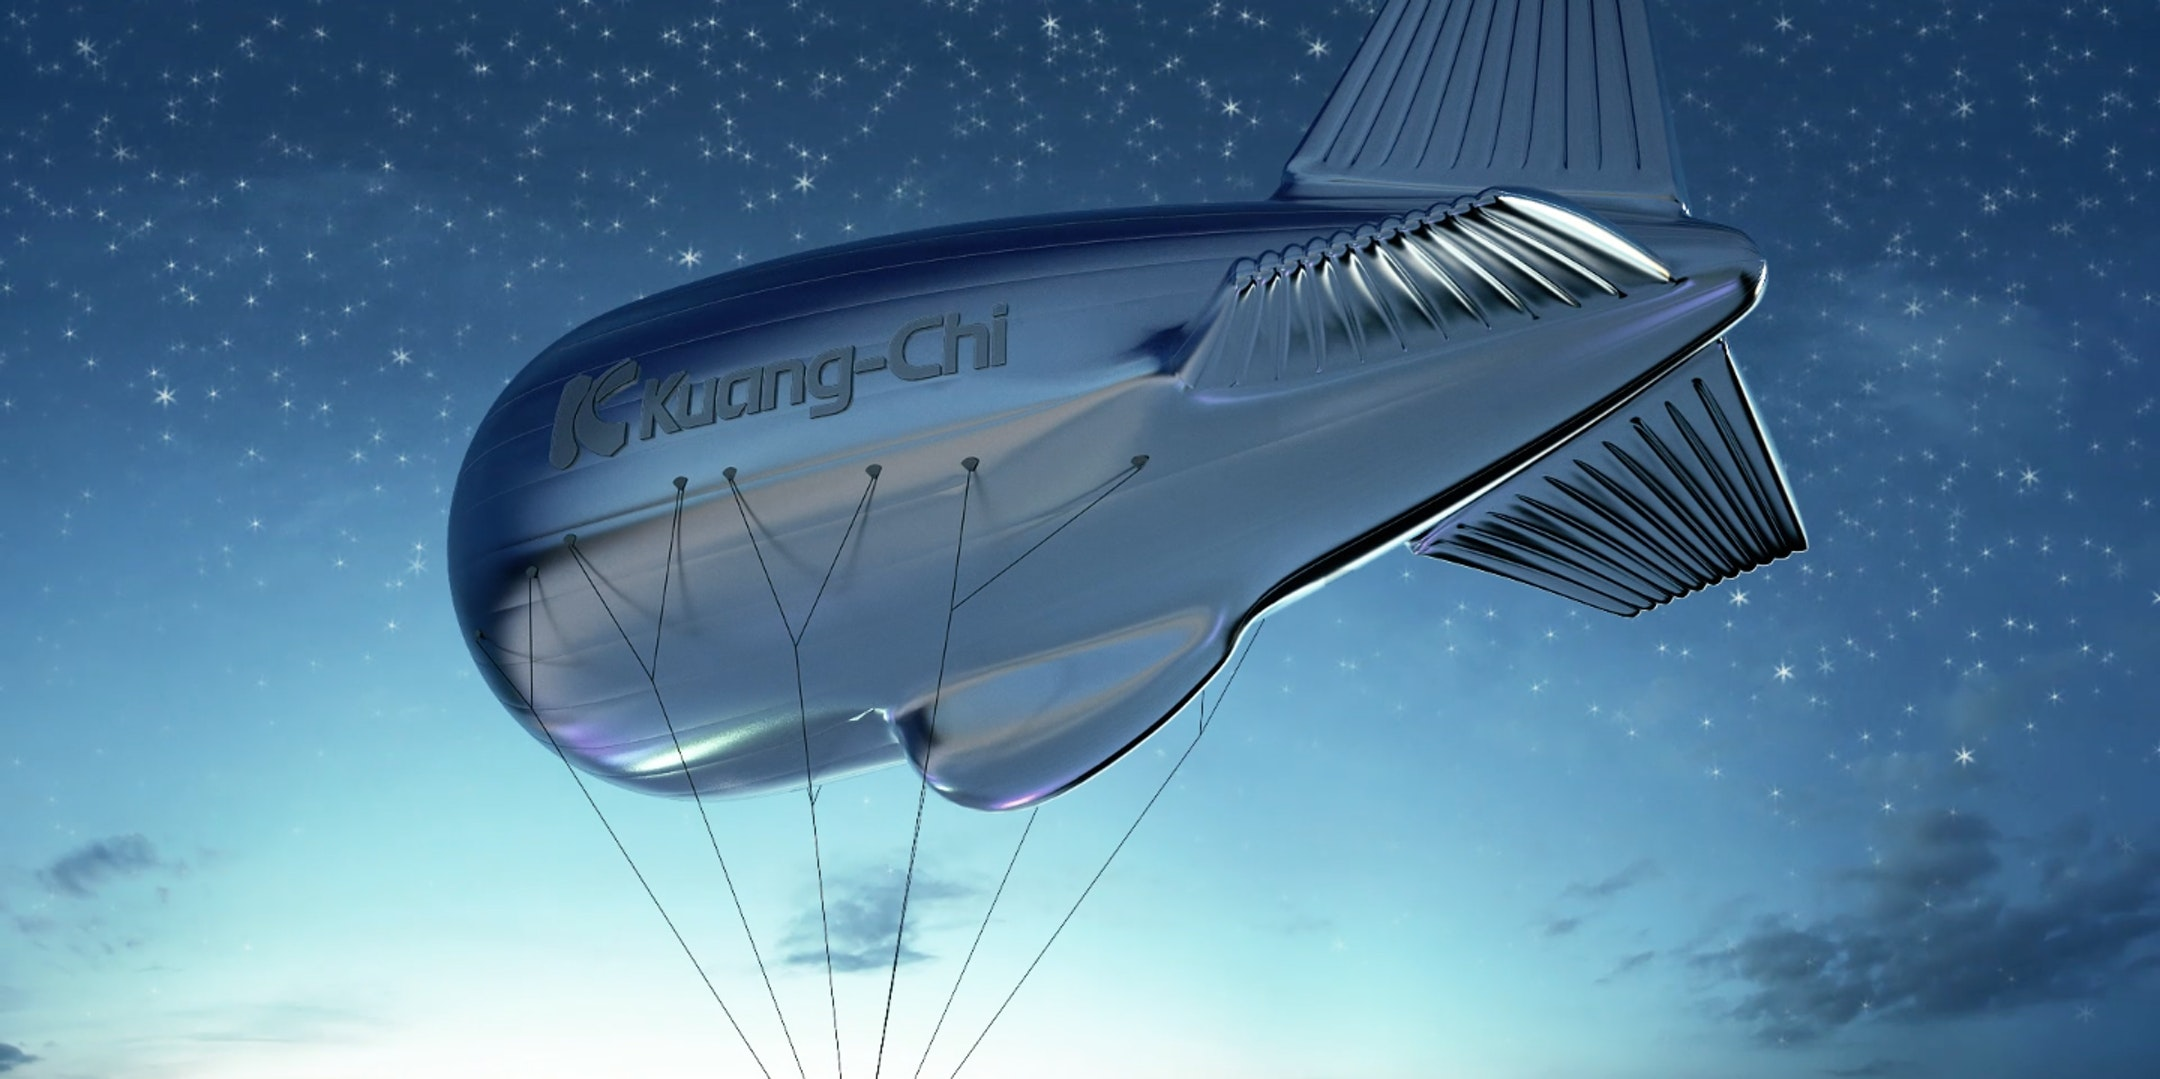 KuangChi's Space Balloon Concept